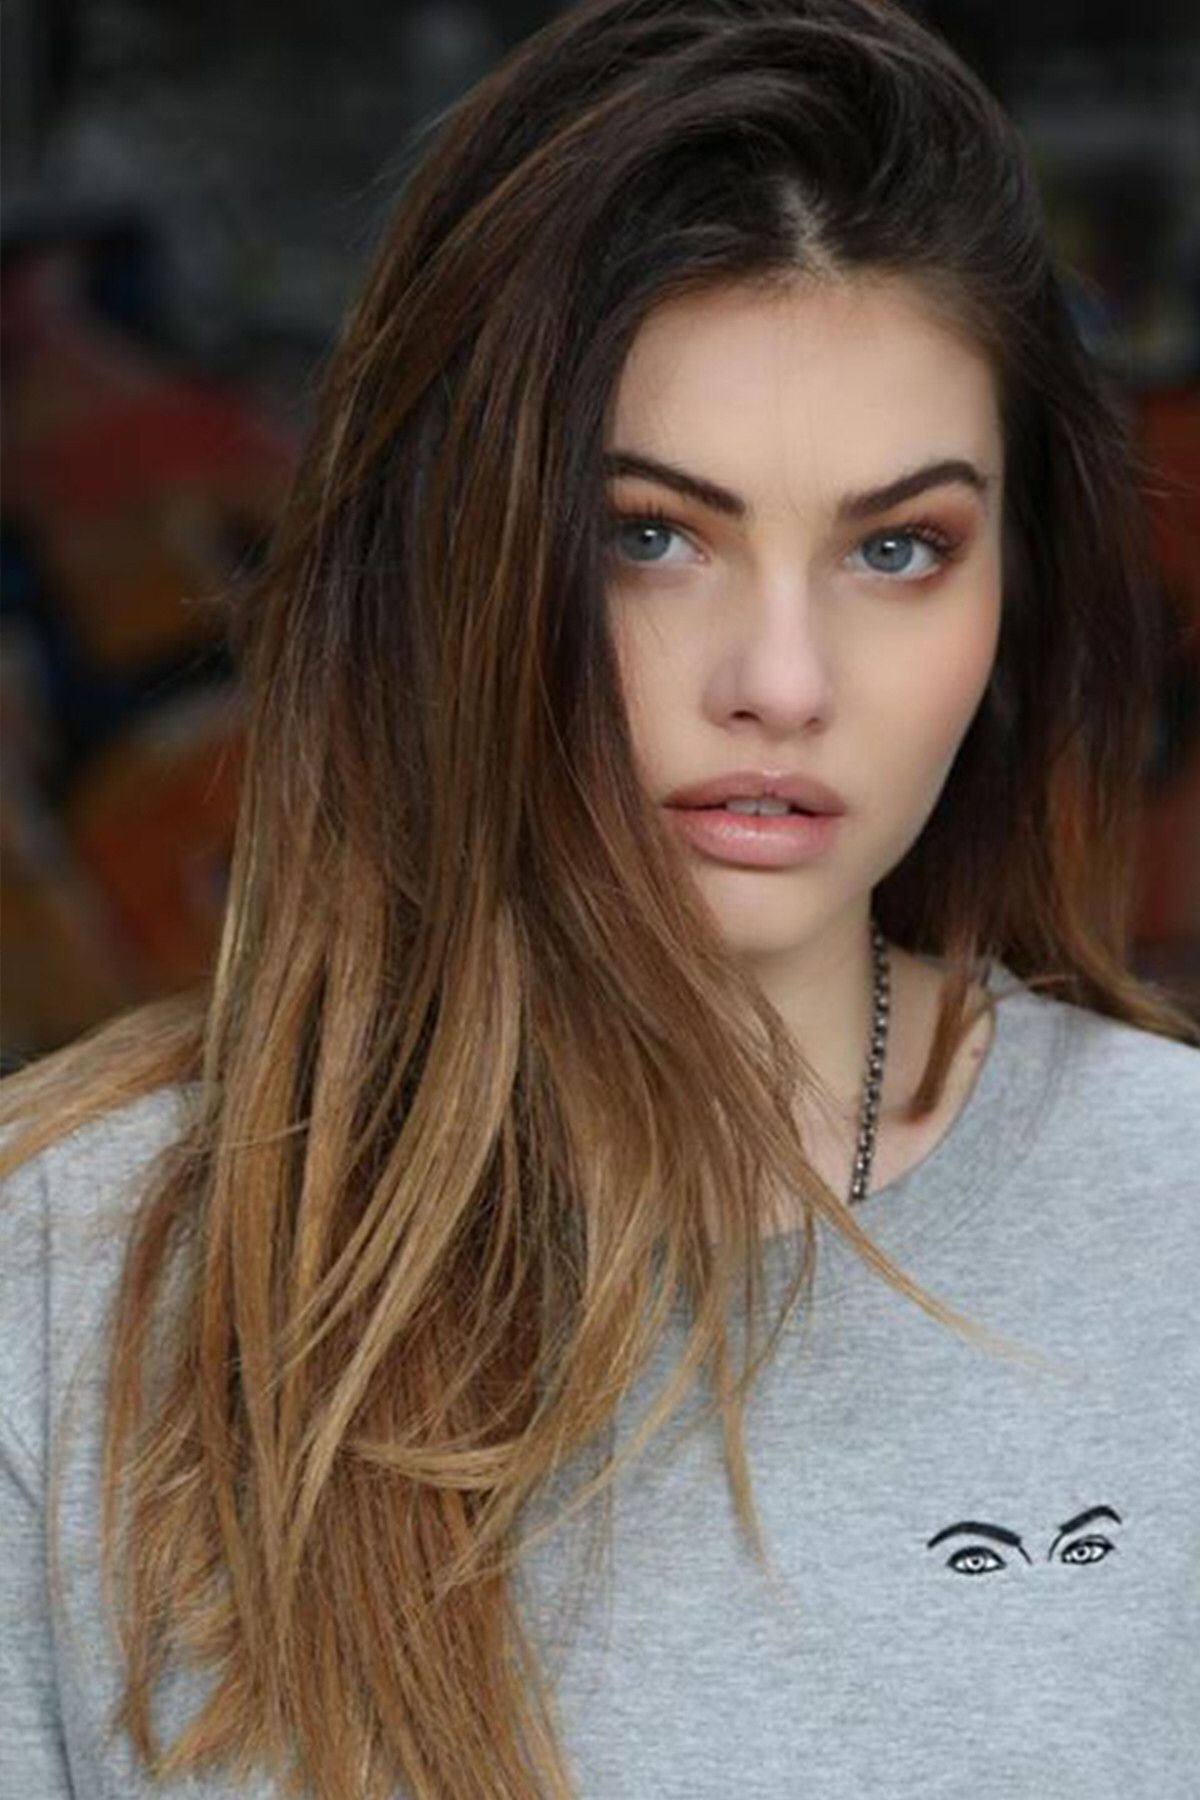 Thylane Blondeau With Images Beautiful Blonde Beauty Face